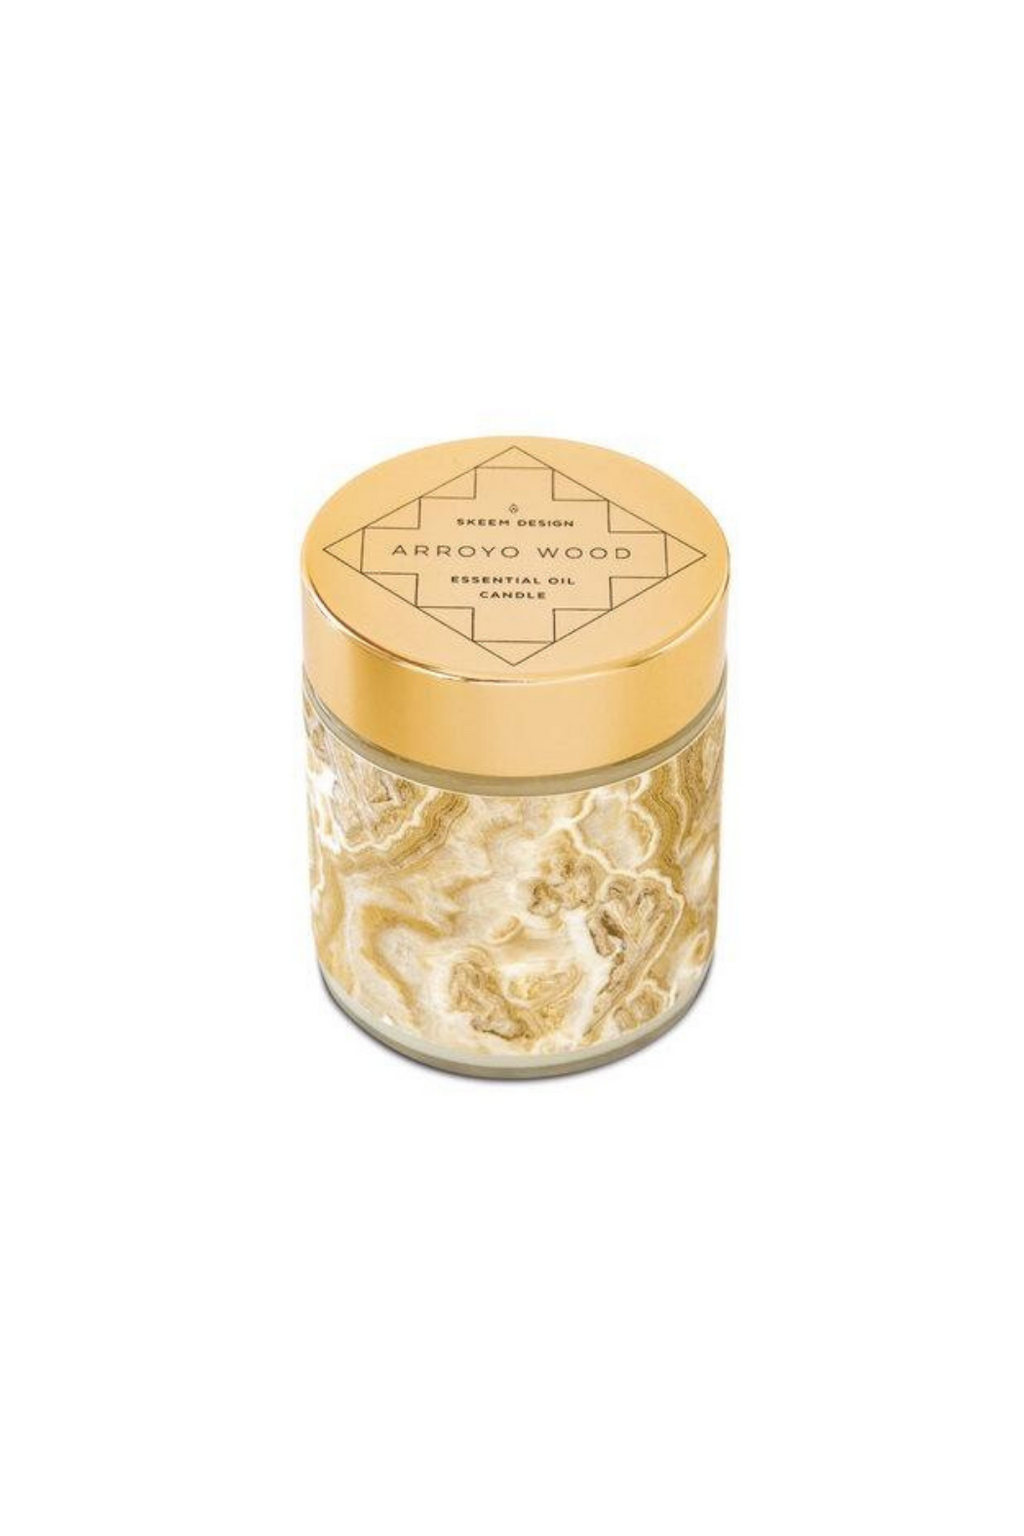 SKEEM Sedona Candle, Arroyo Wood